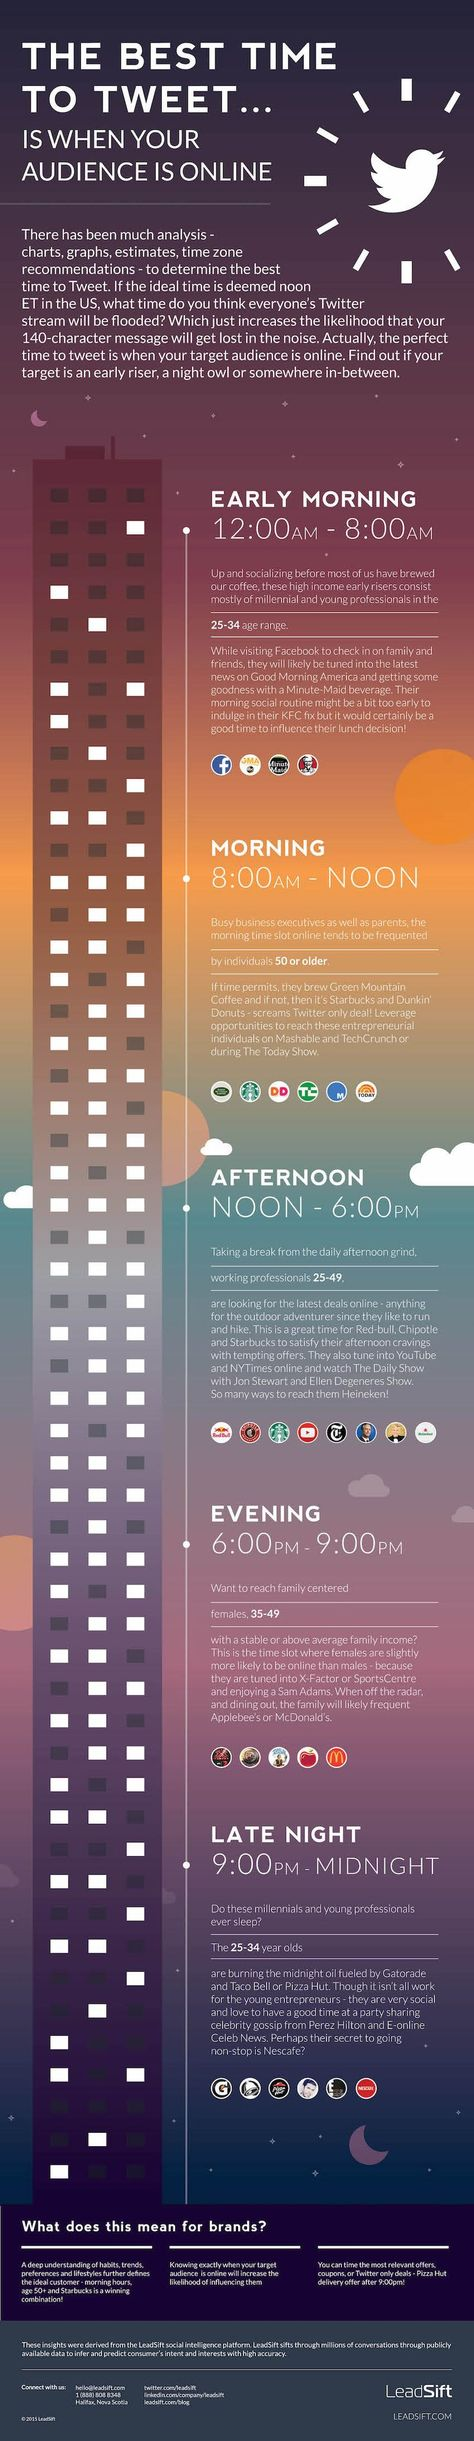 When Is The Definitive Best Time To Post On Twitter? #infographic